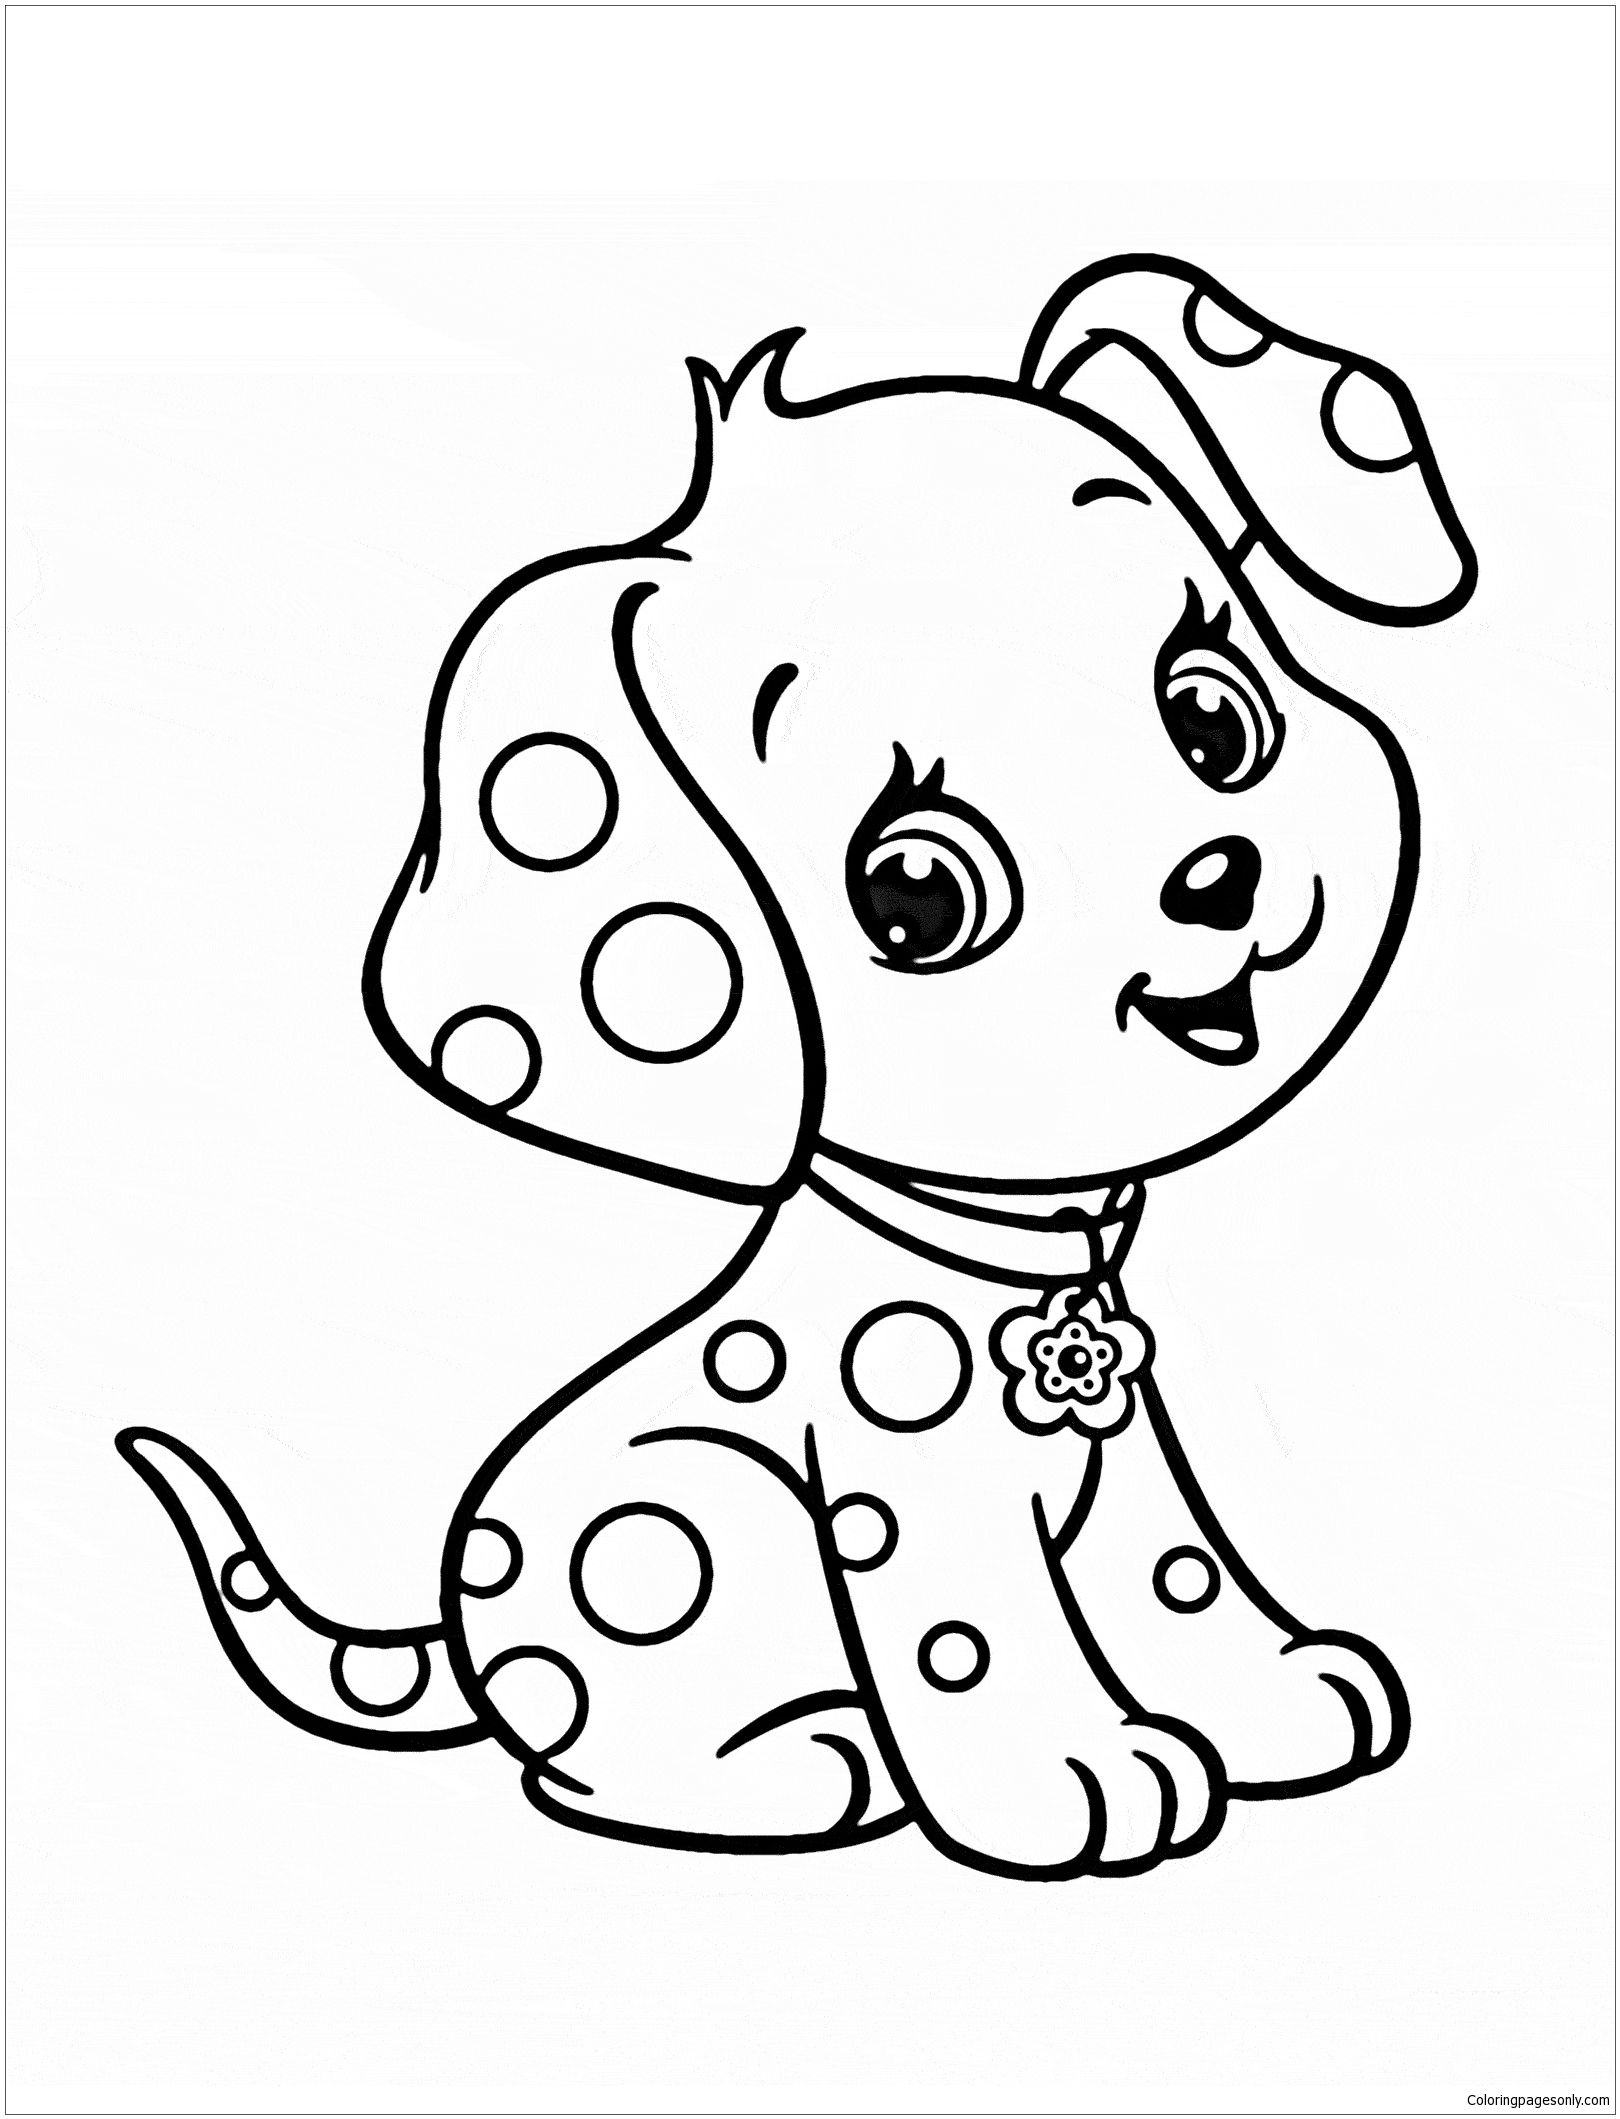 cute puppy 5 coloring page | puppy coloring pages | pinterest